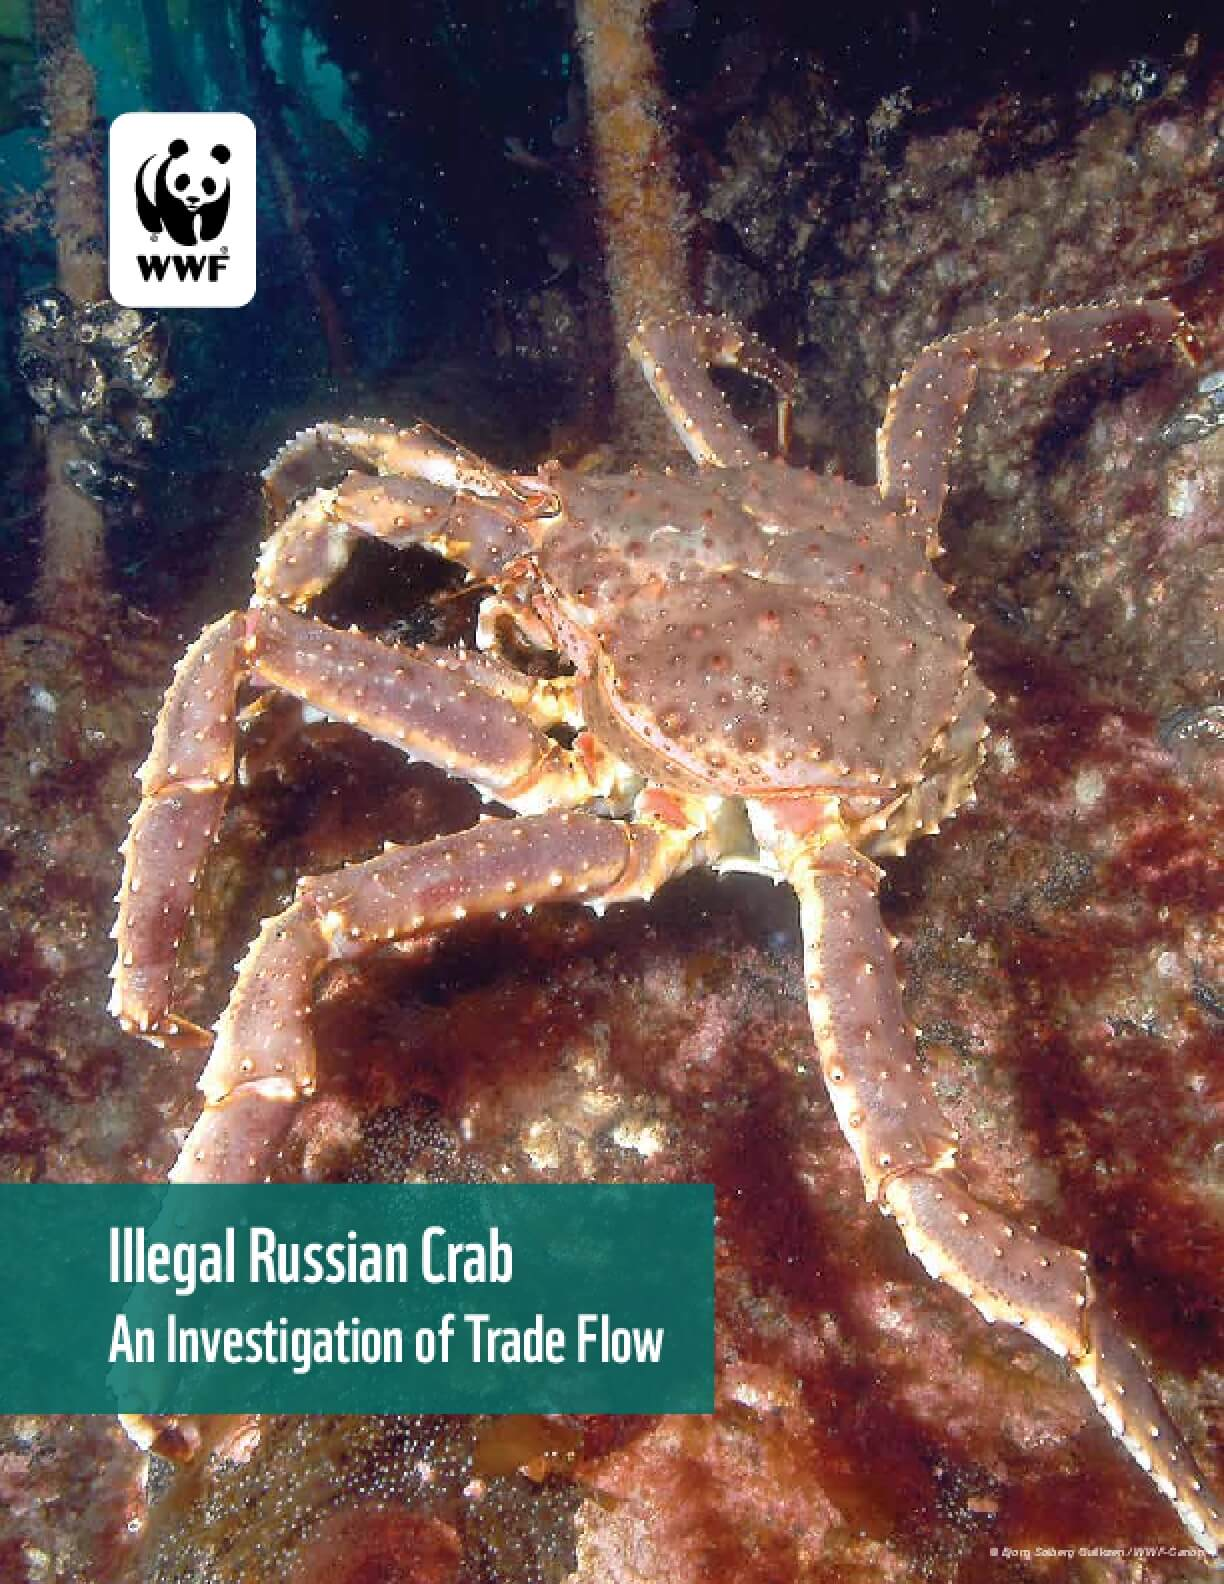 Illegal Russian Crab: An Investigation of Trade Flow